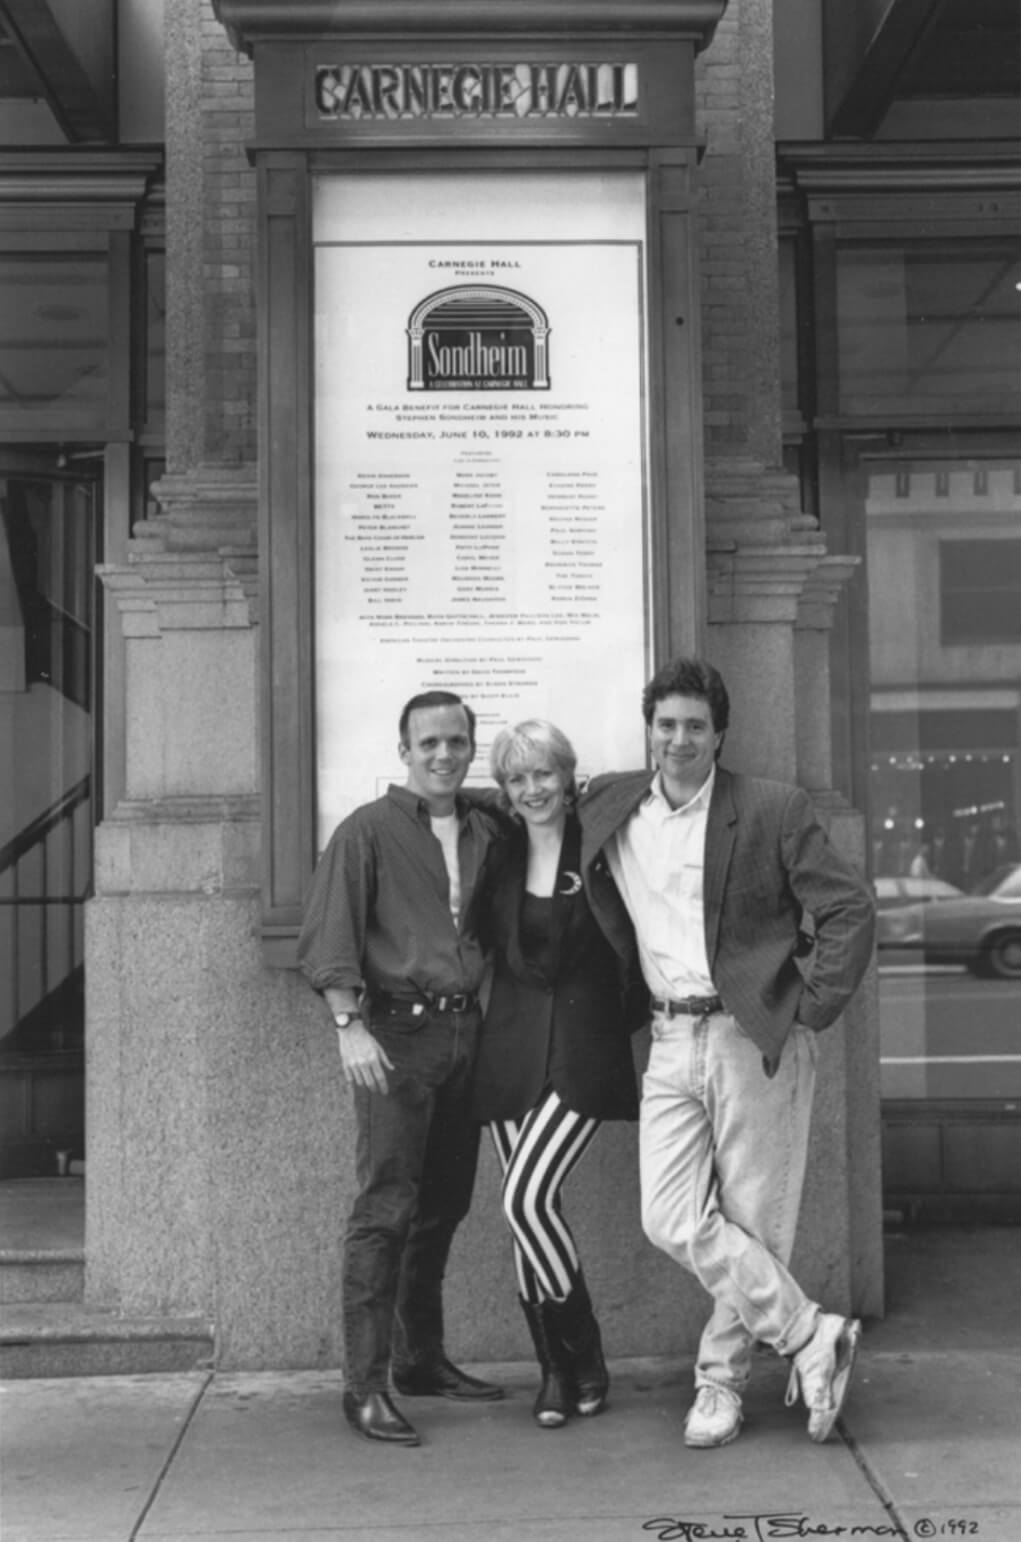 Scott Ellis, Susan Stroman and David Thompson. A black and white photo of the team posing in front of the Sondheim poster at the Carnegie Hall.